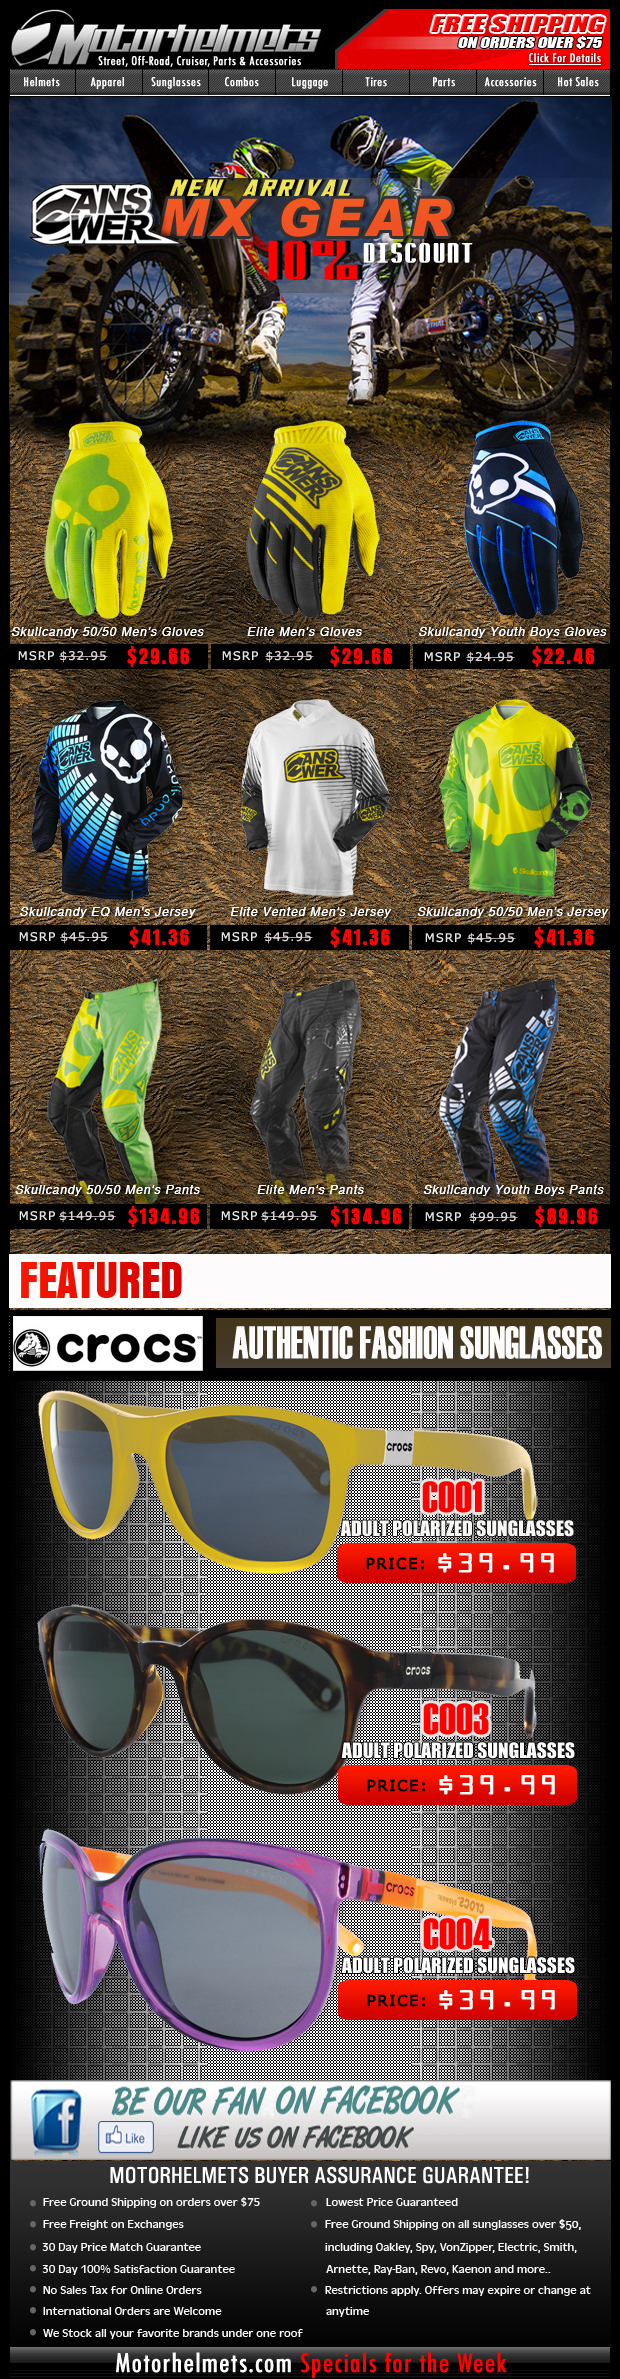 NEW SPRING MX Gear from Answer Racing: the SKULLCANDY & ELITE line!